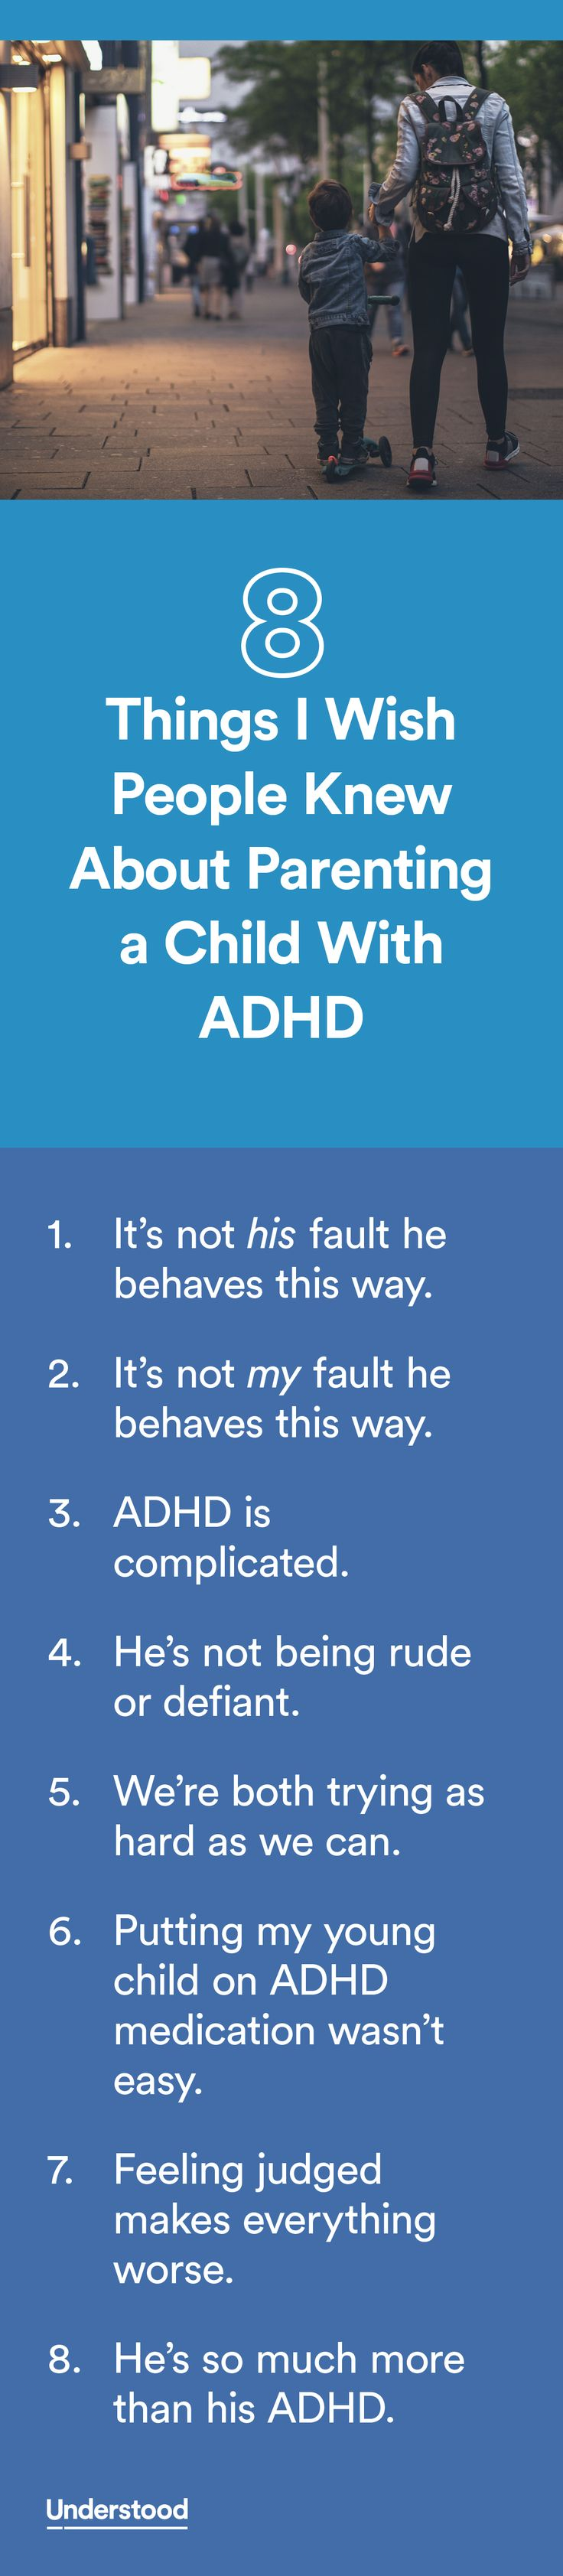 Things to know when hookup someone with adhd